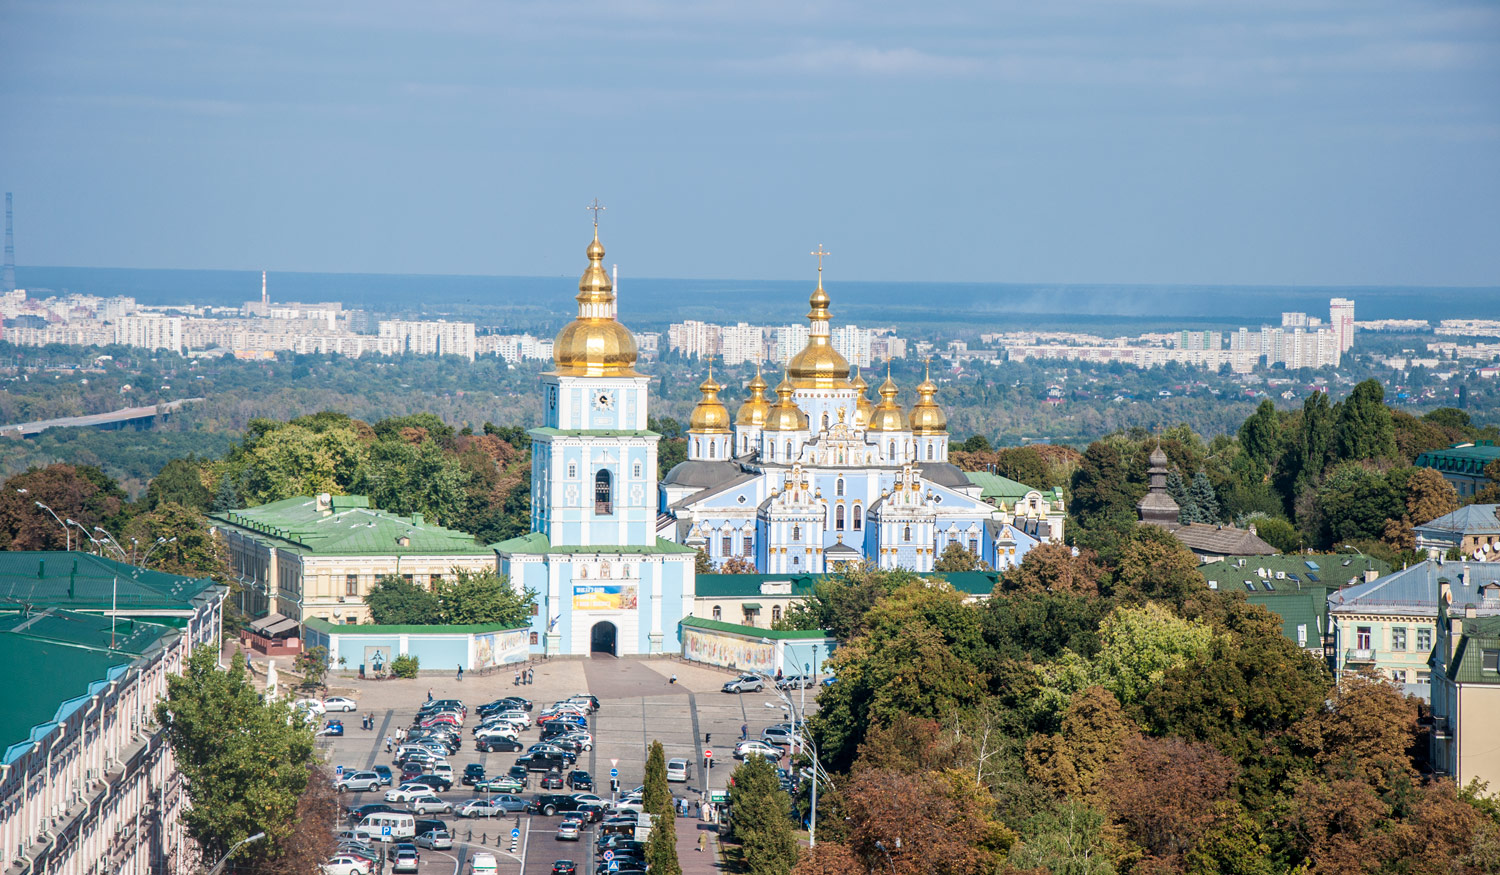 St. Michael's Golden-Domed Monastery from Saint Sophia's Cathedral's bell tower